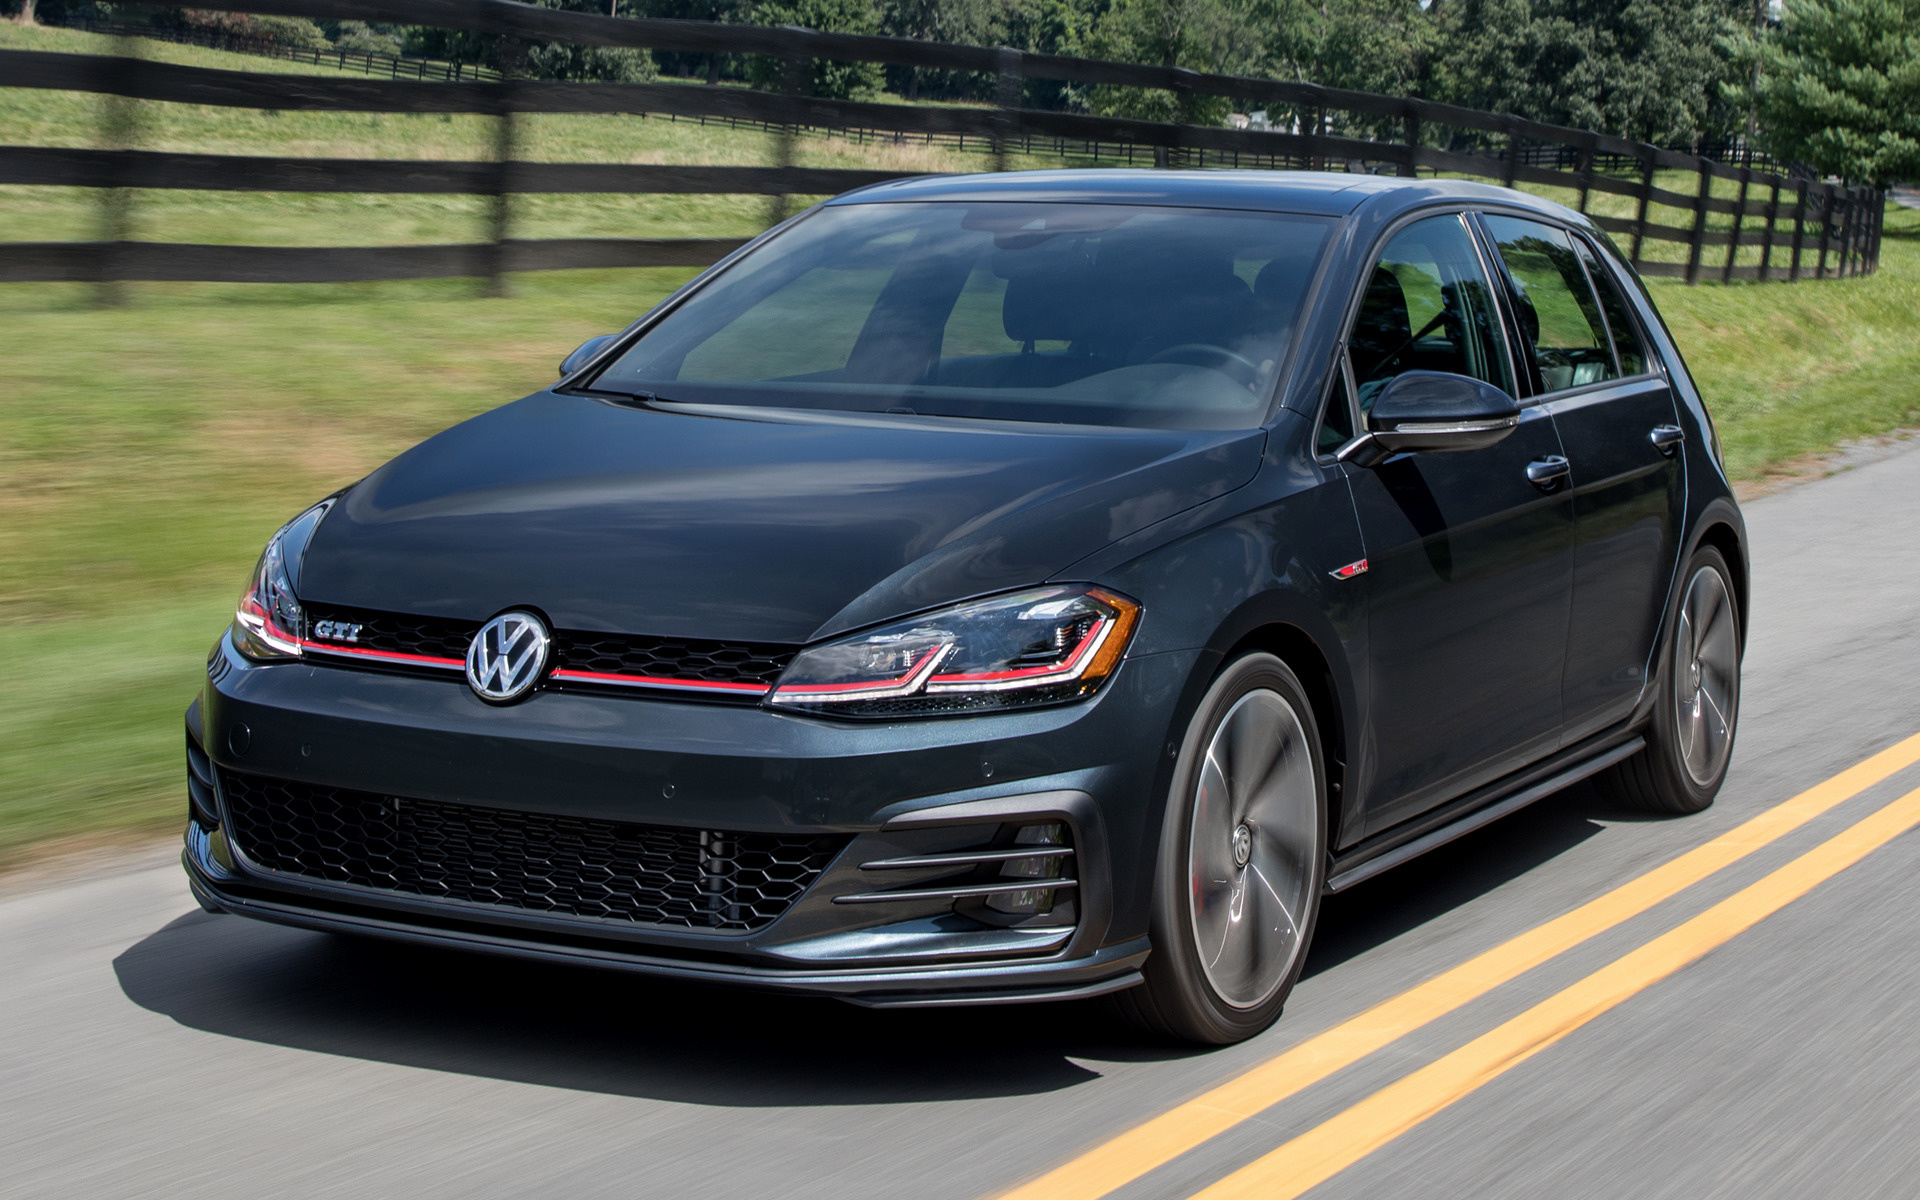 Volkswagen Golf GTI 5 Door 2018 US Wallpapers And HD Images